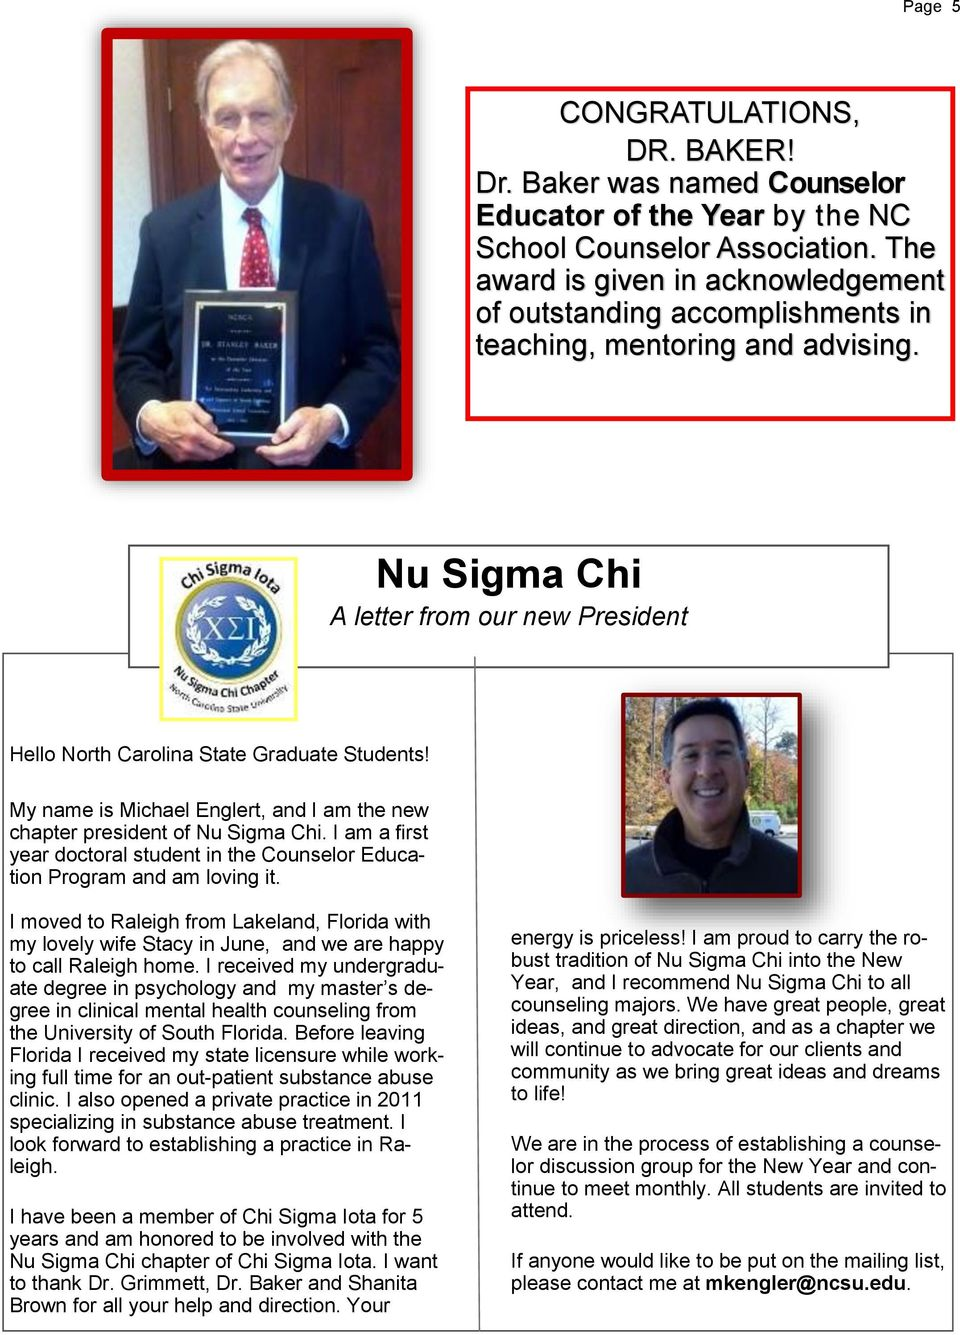 My name is Michael Englert, and I am the new chapter president of Nu Sigma Chi. I am a first year doctoral student in the Counselor Education Program and am loving it.